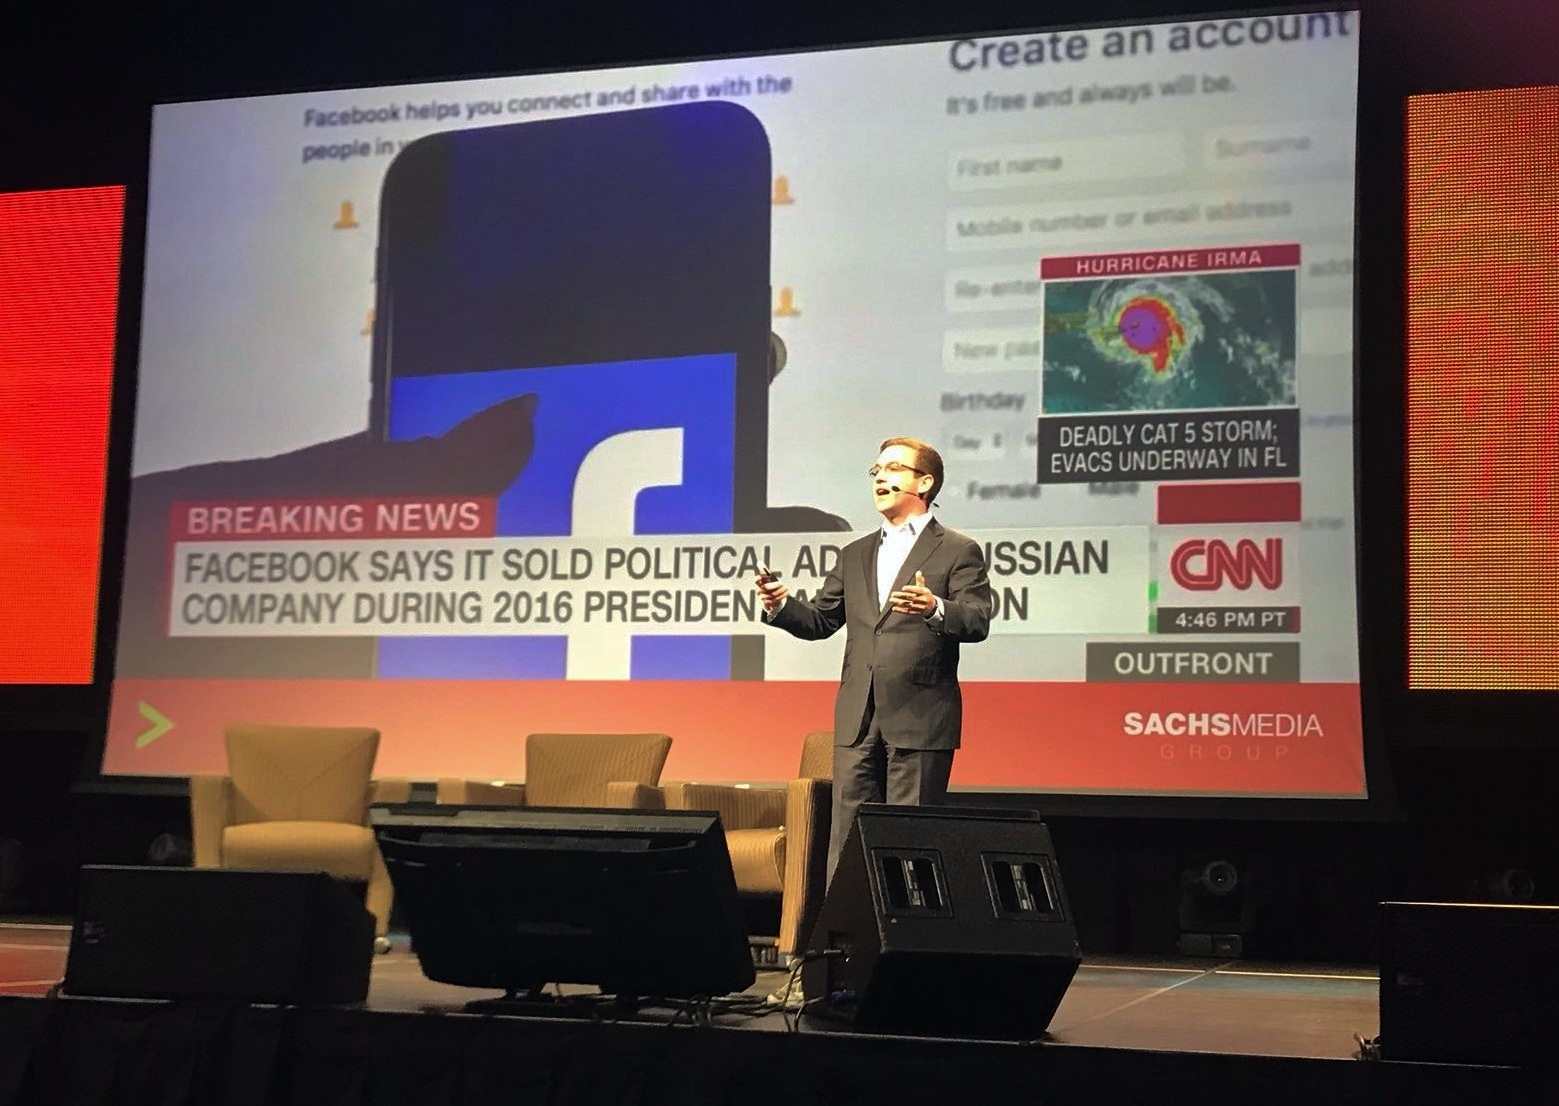 Ryan Cohn gives presentation on Facebook crisis